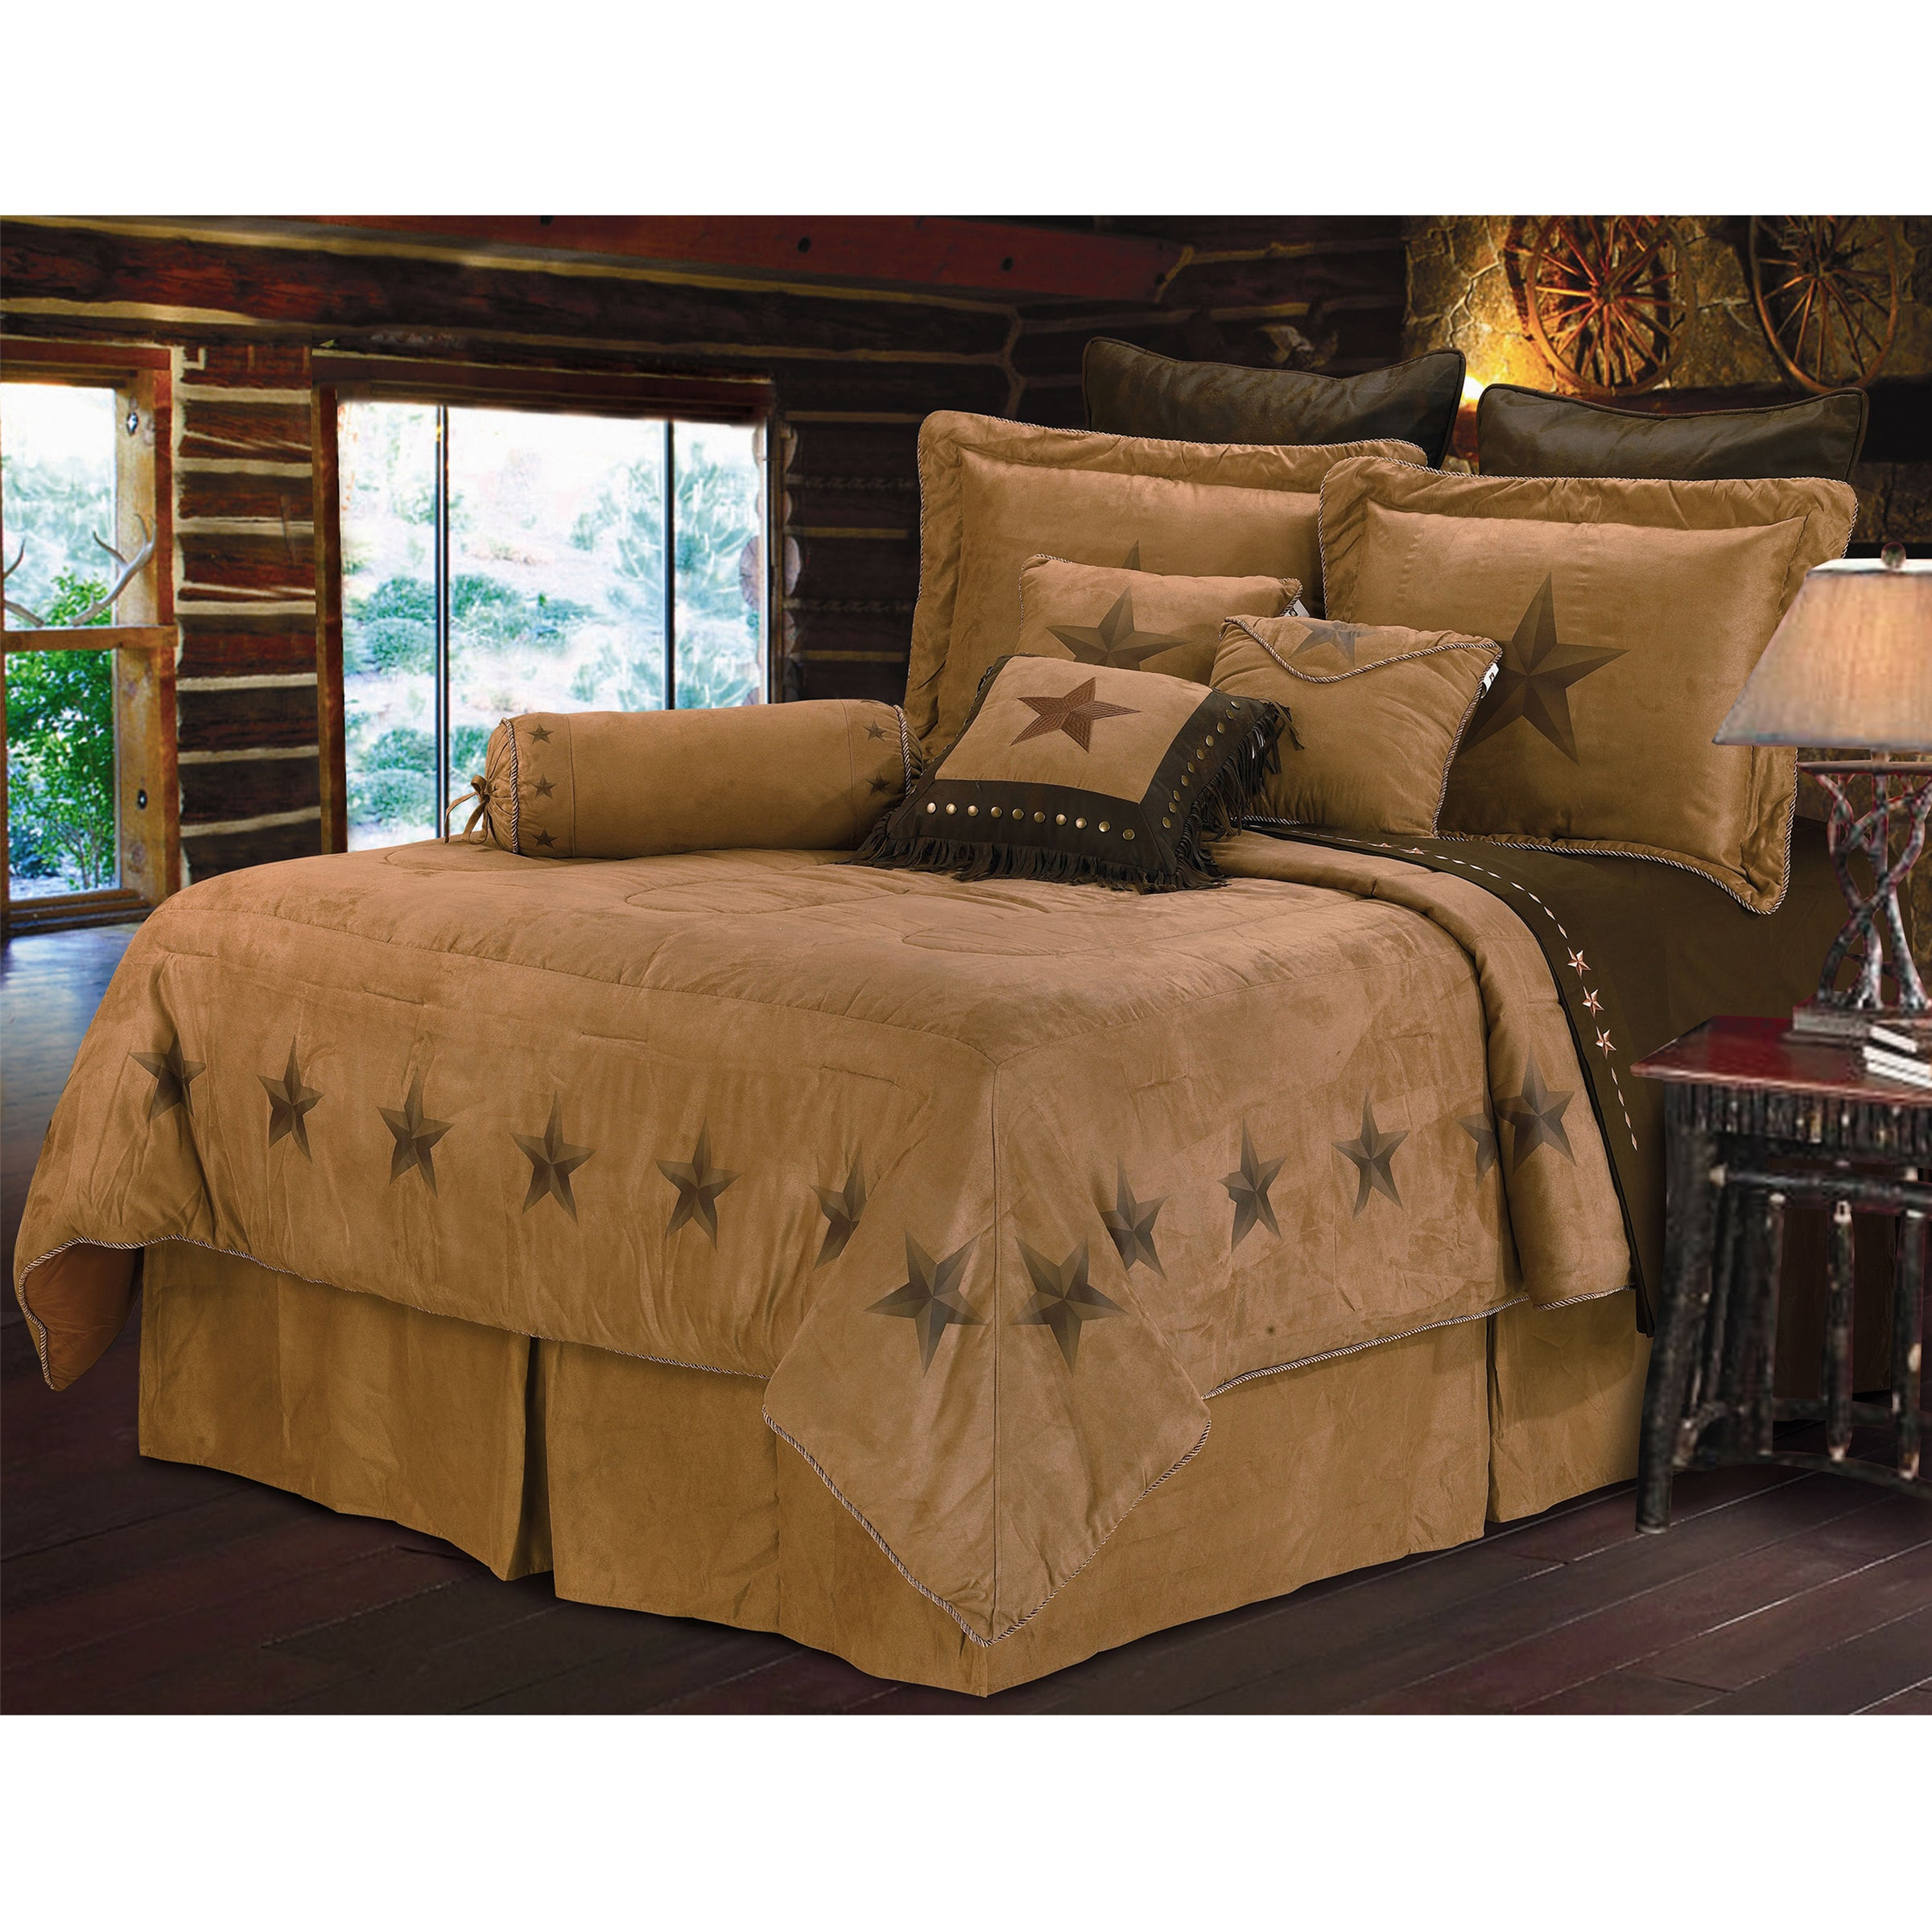 Shop hiend accents luxury star brown faux suede 7 piece comforter set free shipping today overstock com 10119316